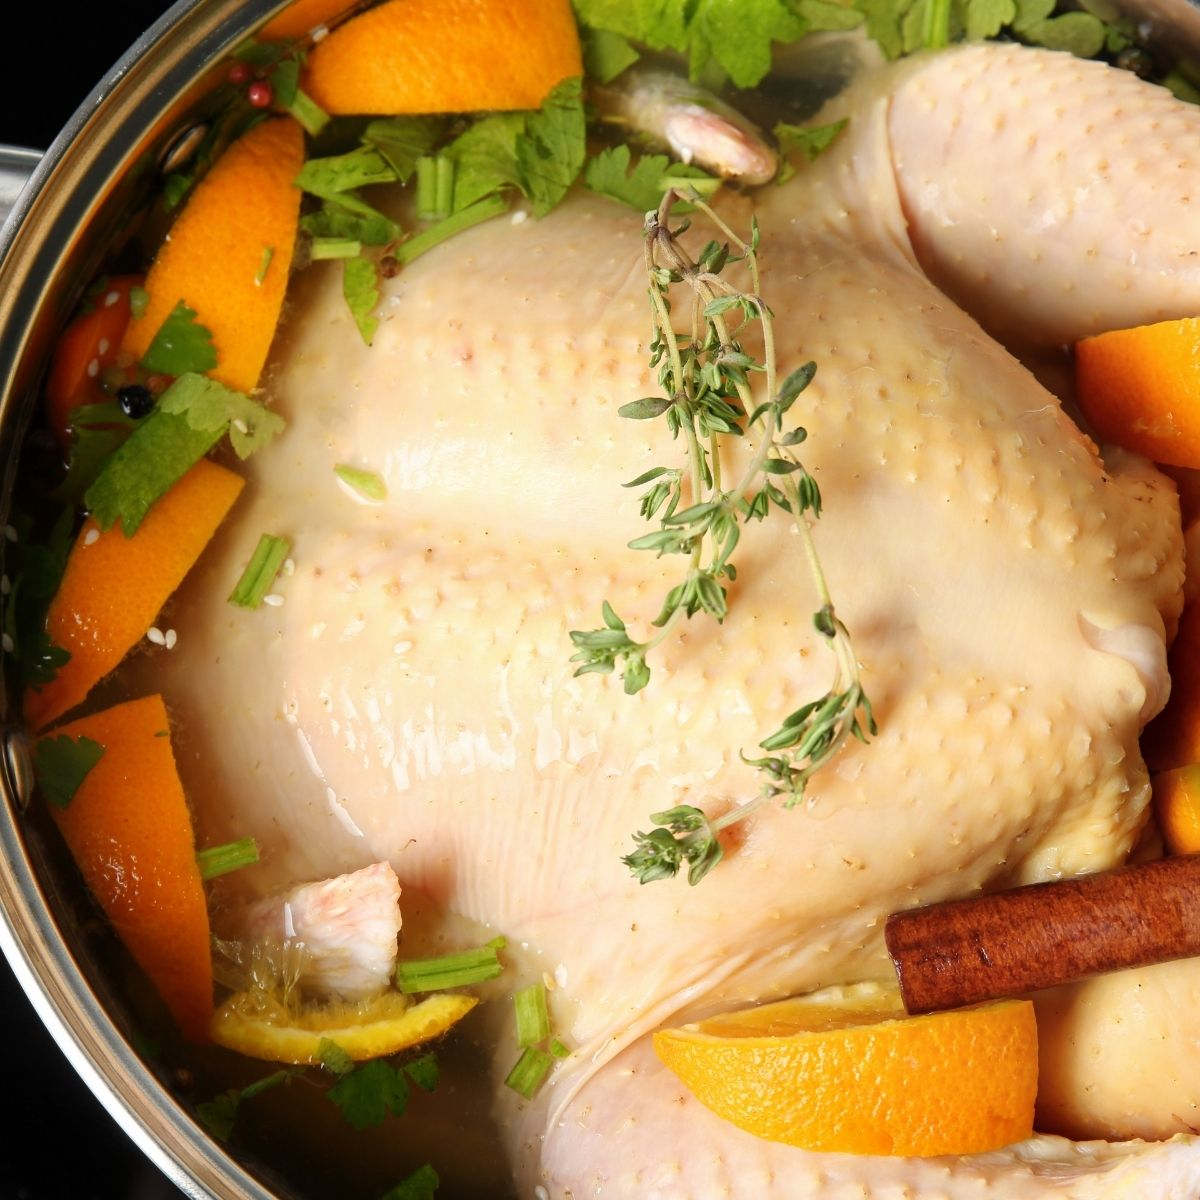 An uncooked turkey in a pot with vegetables and herbs for brining